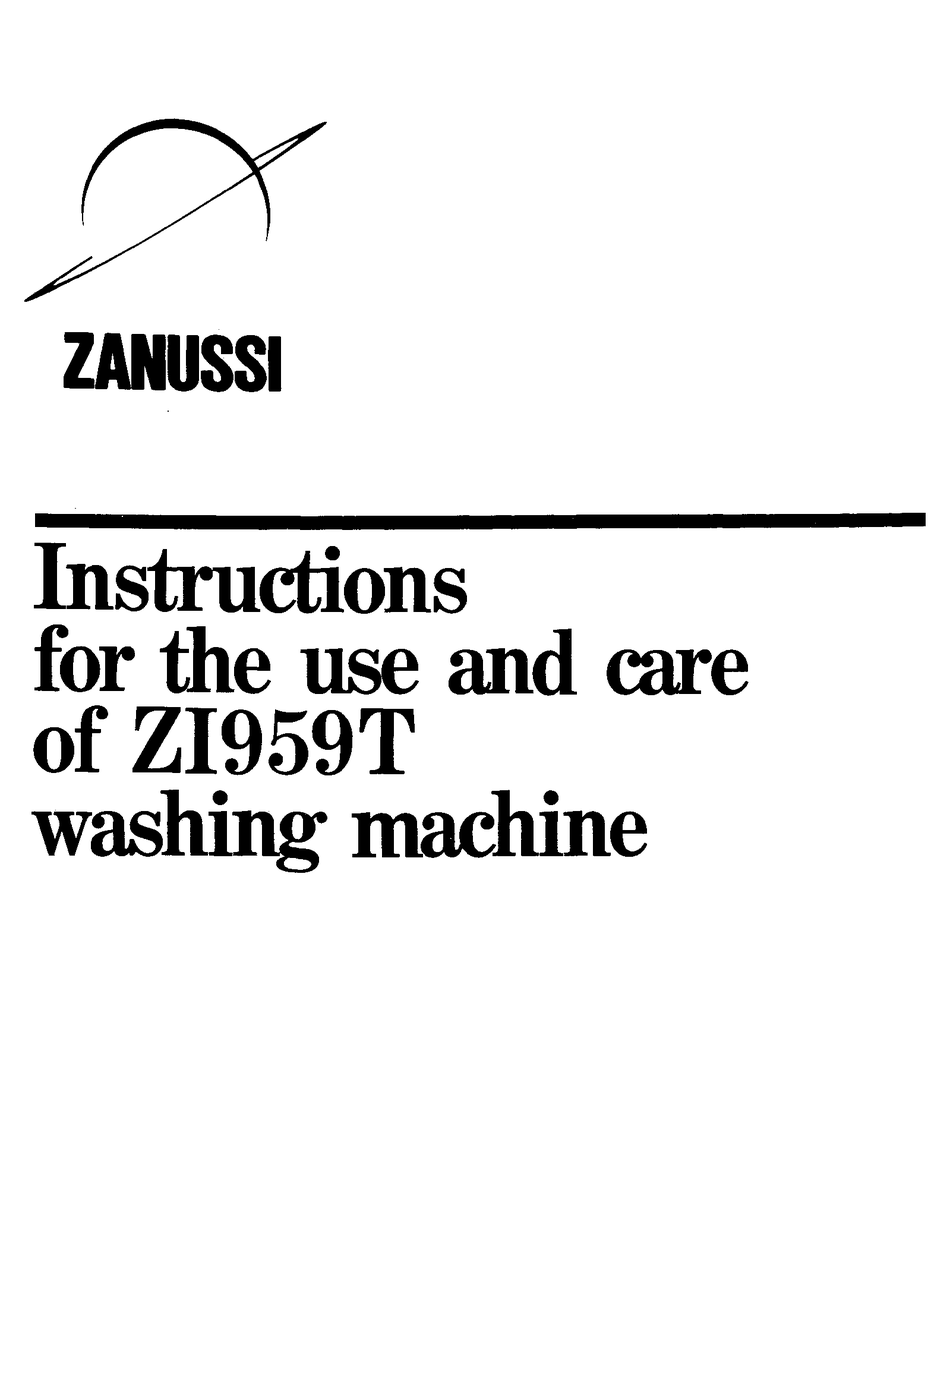 ZANUSSI ZI959T INSTRUCTIONS FOR THE USE AND CARE Pdf